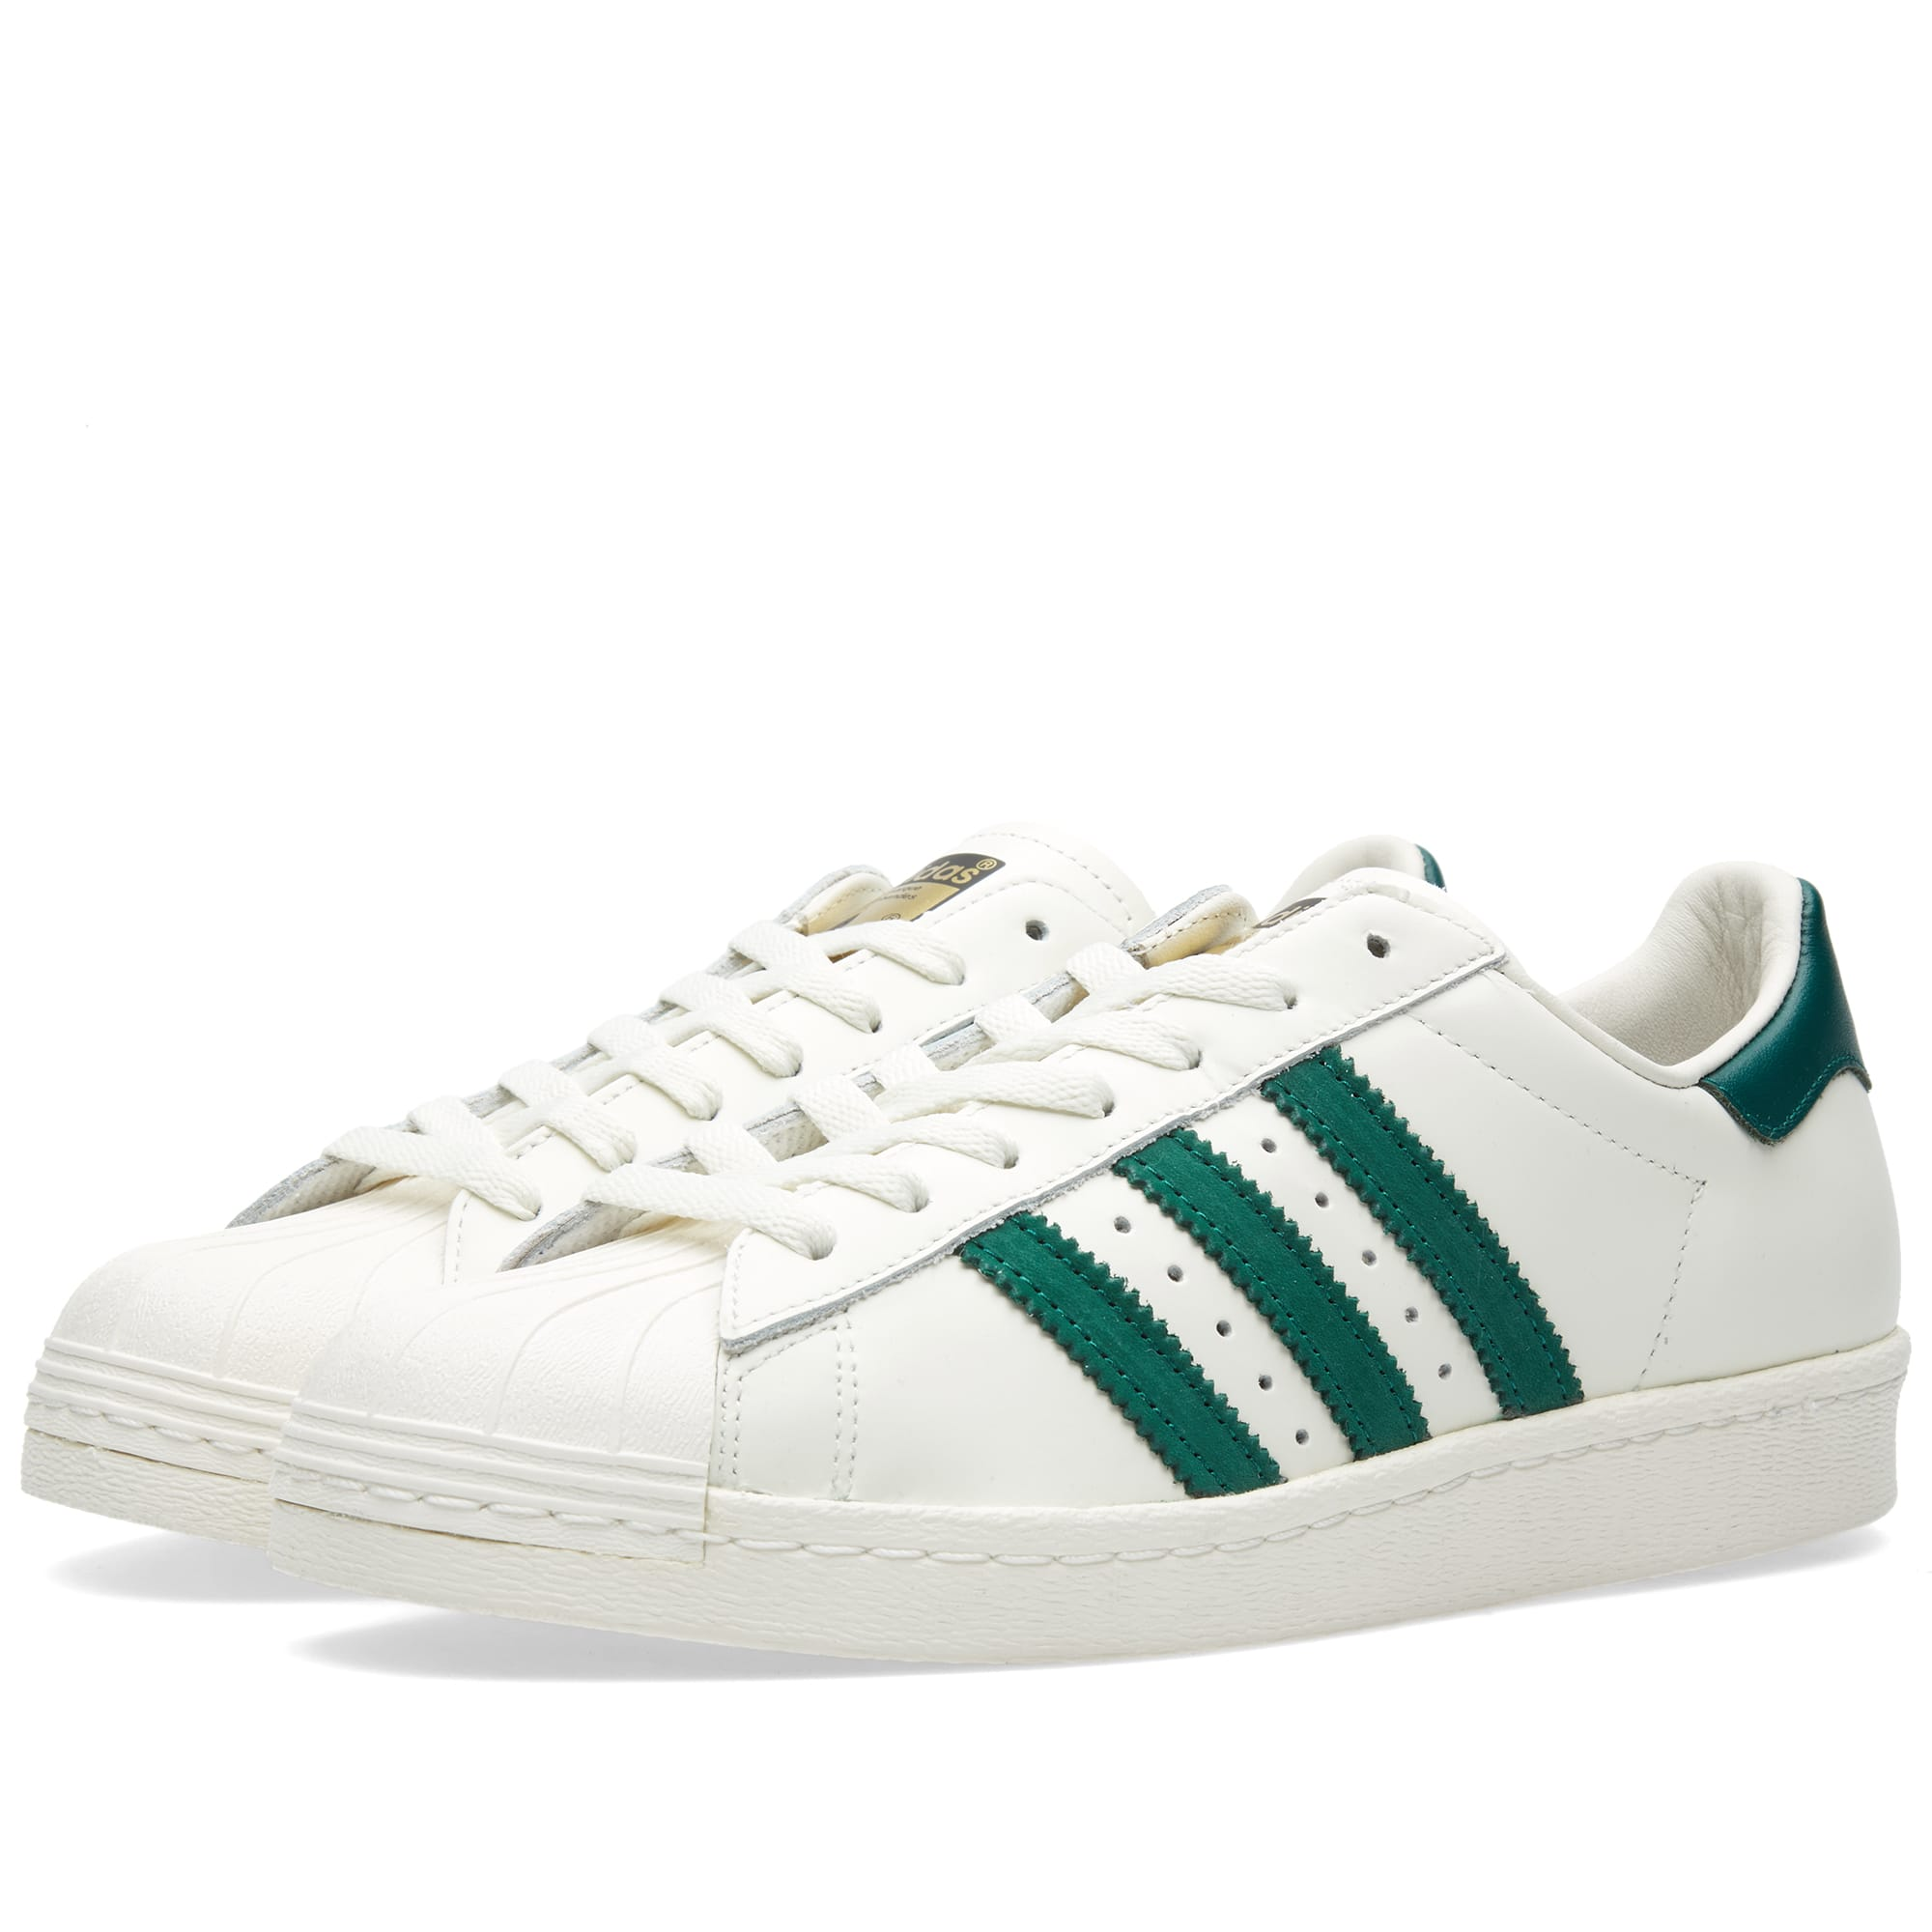 adidas superstar 80s dlx vintage white green. Black Bedroom Furniture Sets. Home Design Ideas